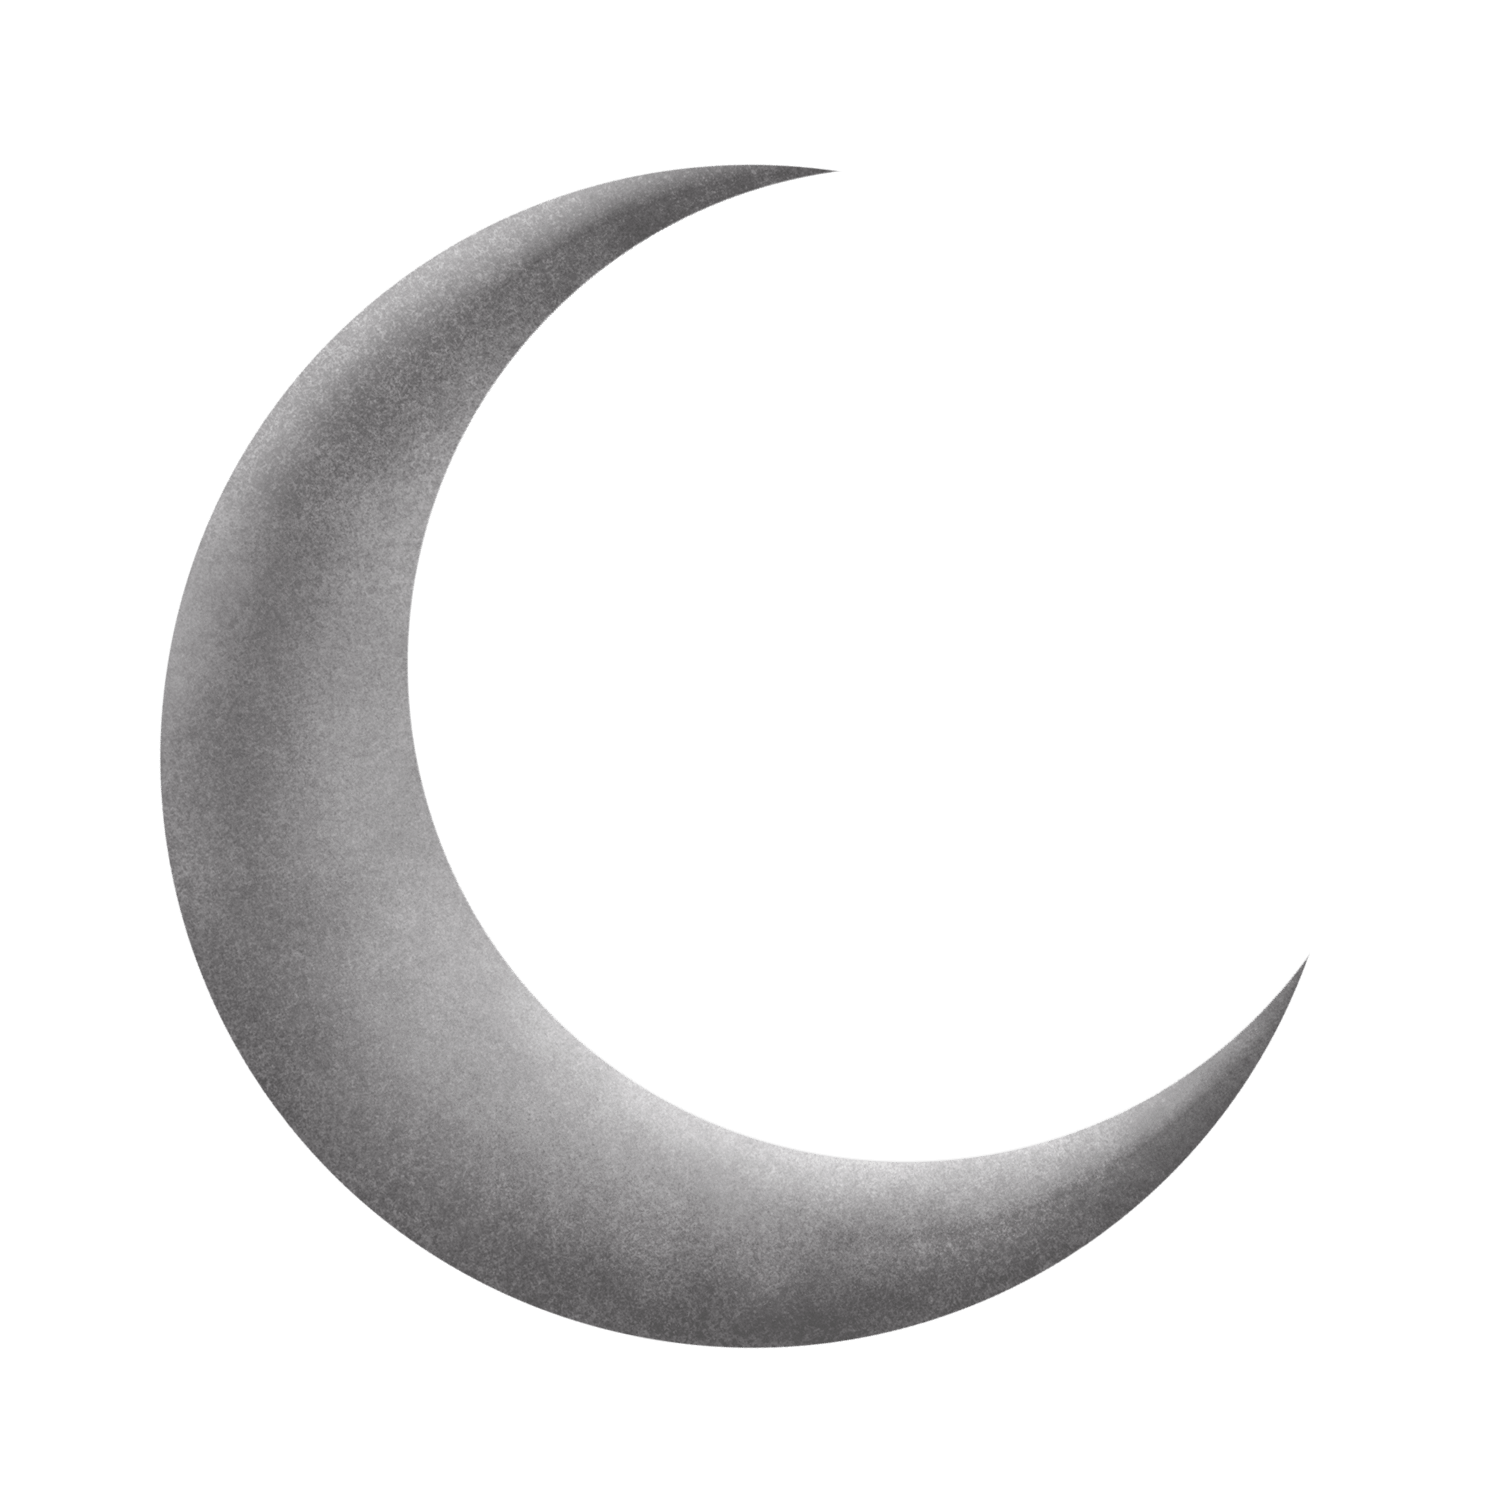 Crescent moon png. Silver grey transparent stickpng